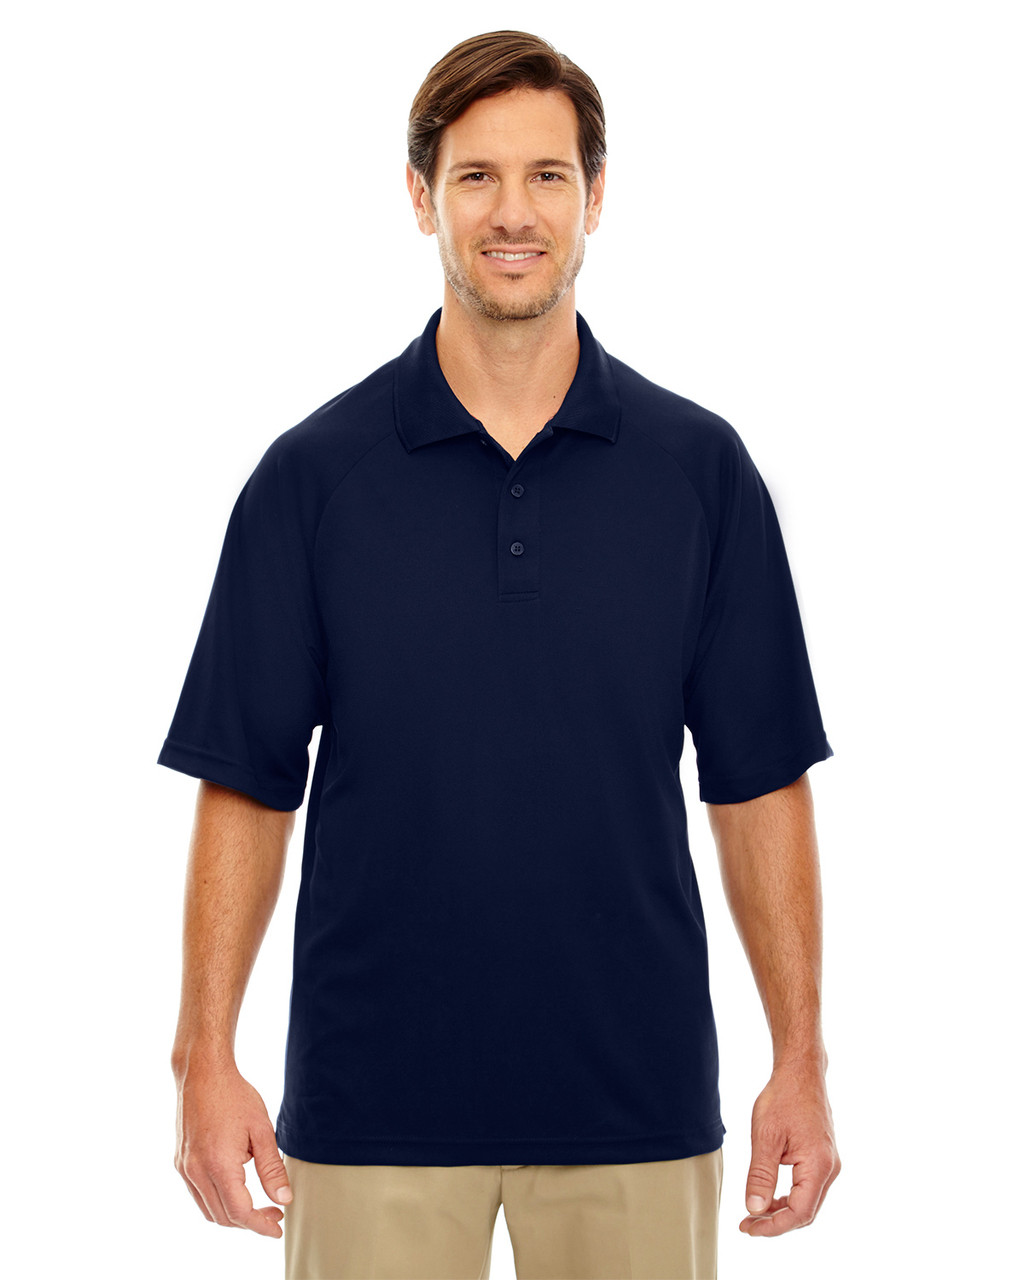 Classic Navy - 85080 Extreme Men's Eperformance™ Pique Polo Shirt